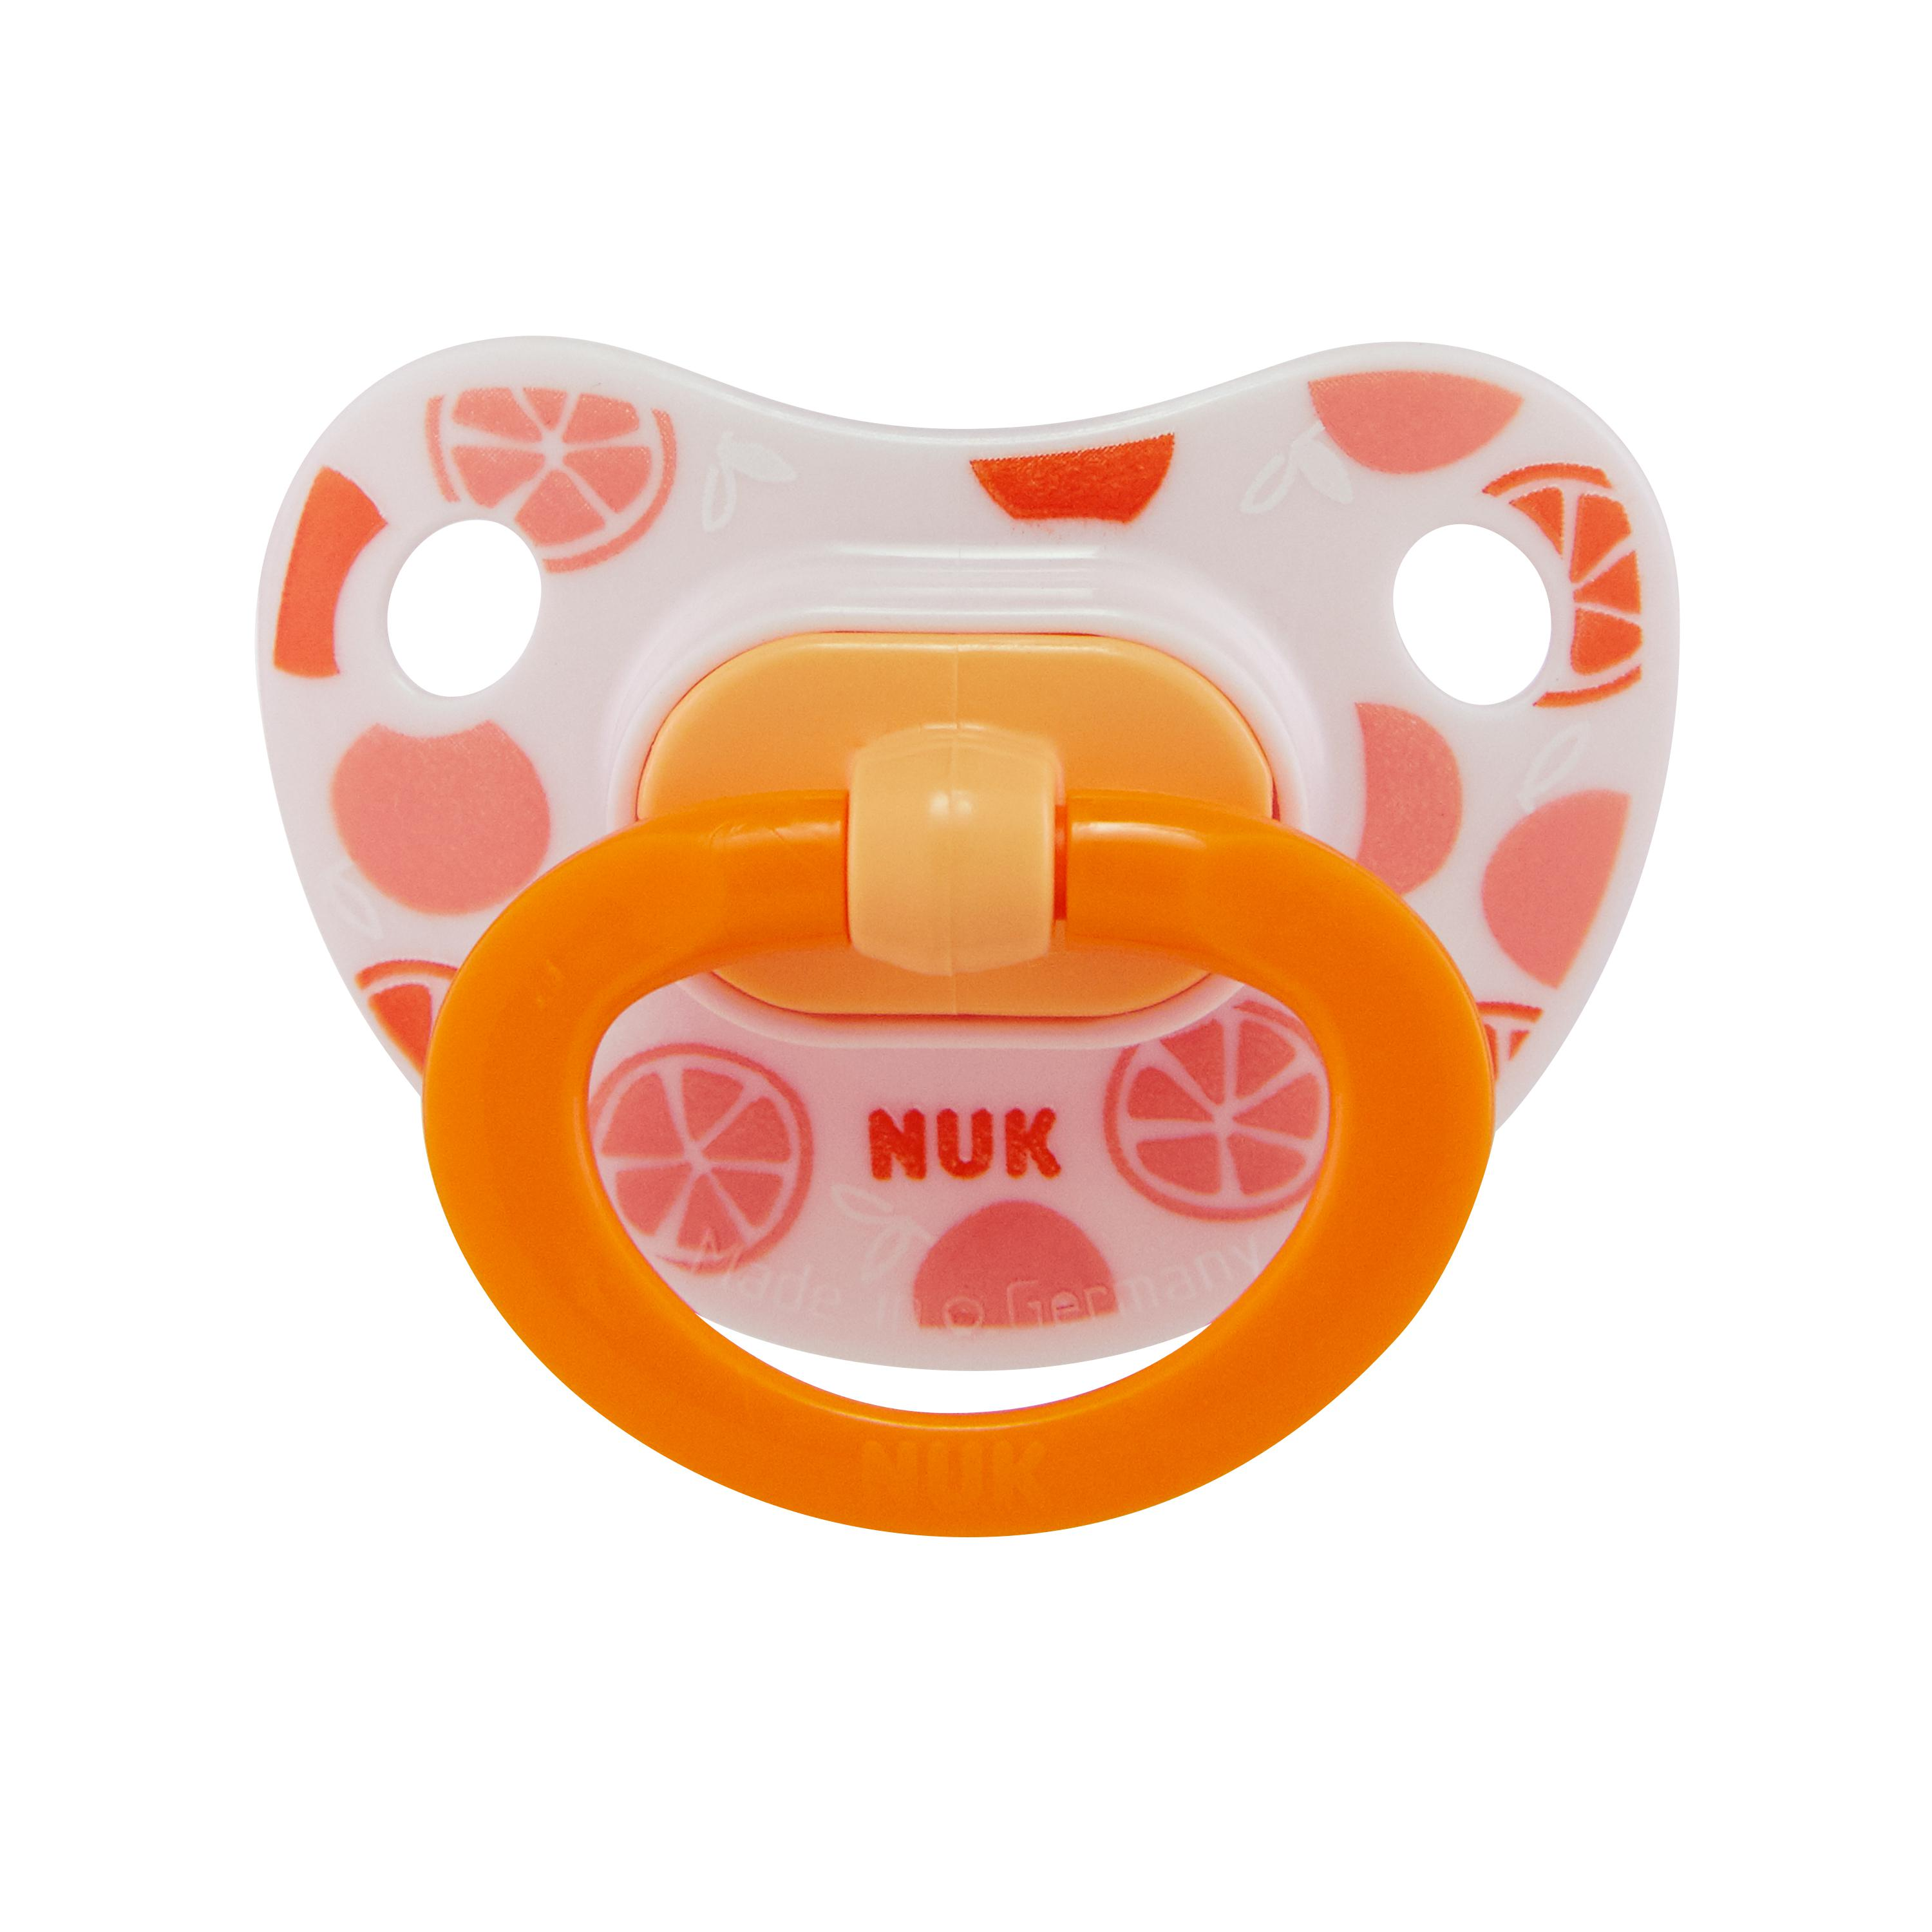 NUK® Sensitive™ Orthodontic Pacifiers, 6-18 Months, 2-Pack Product Image 1 of 7